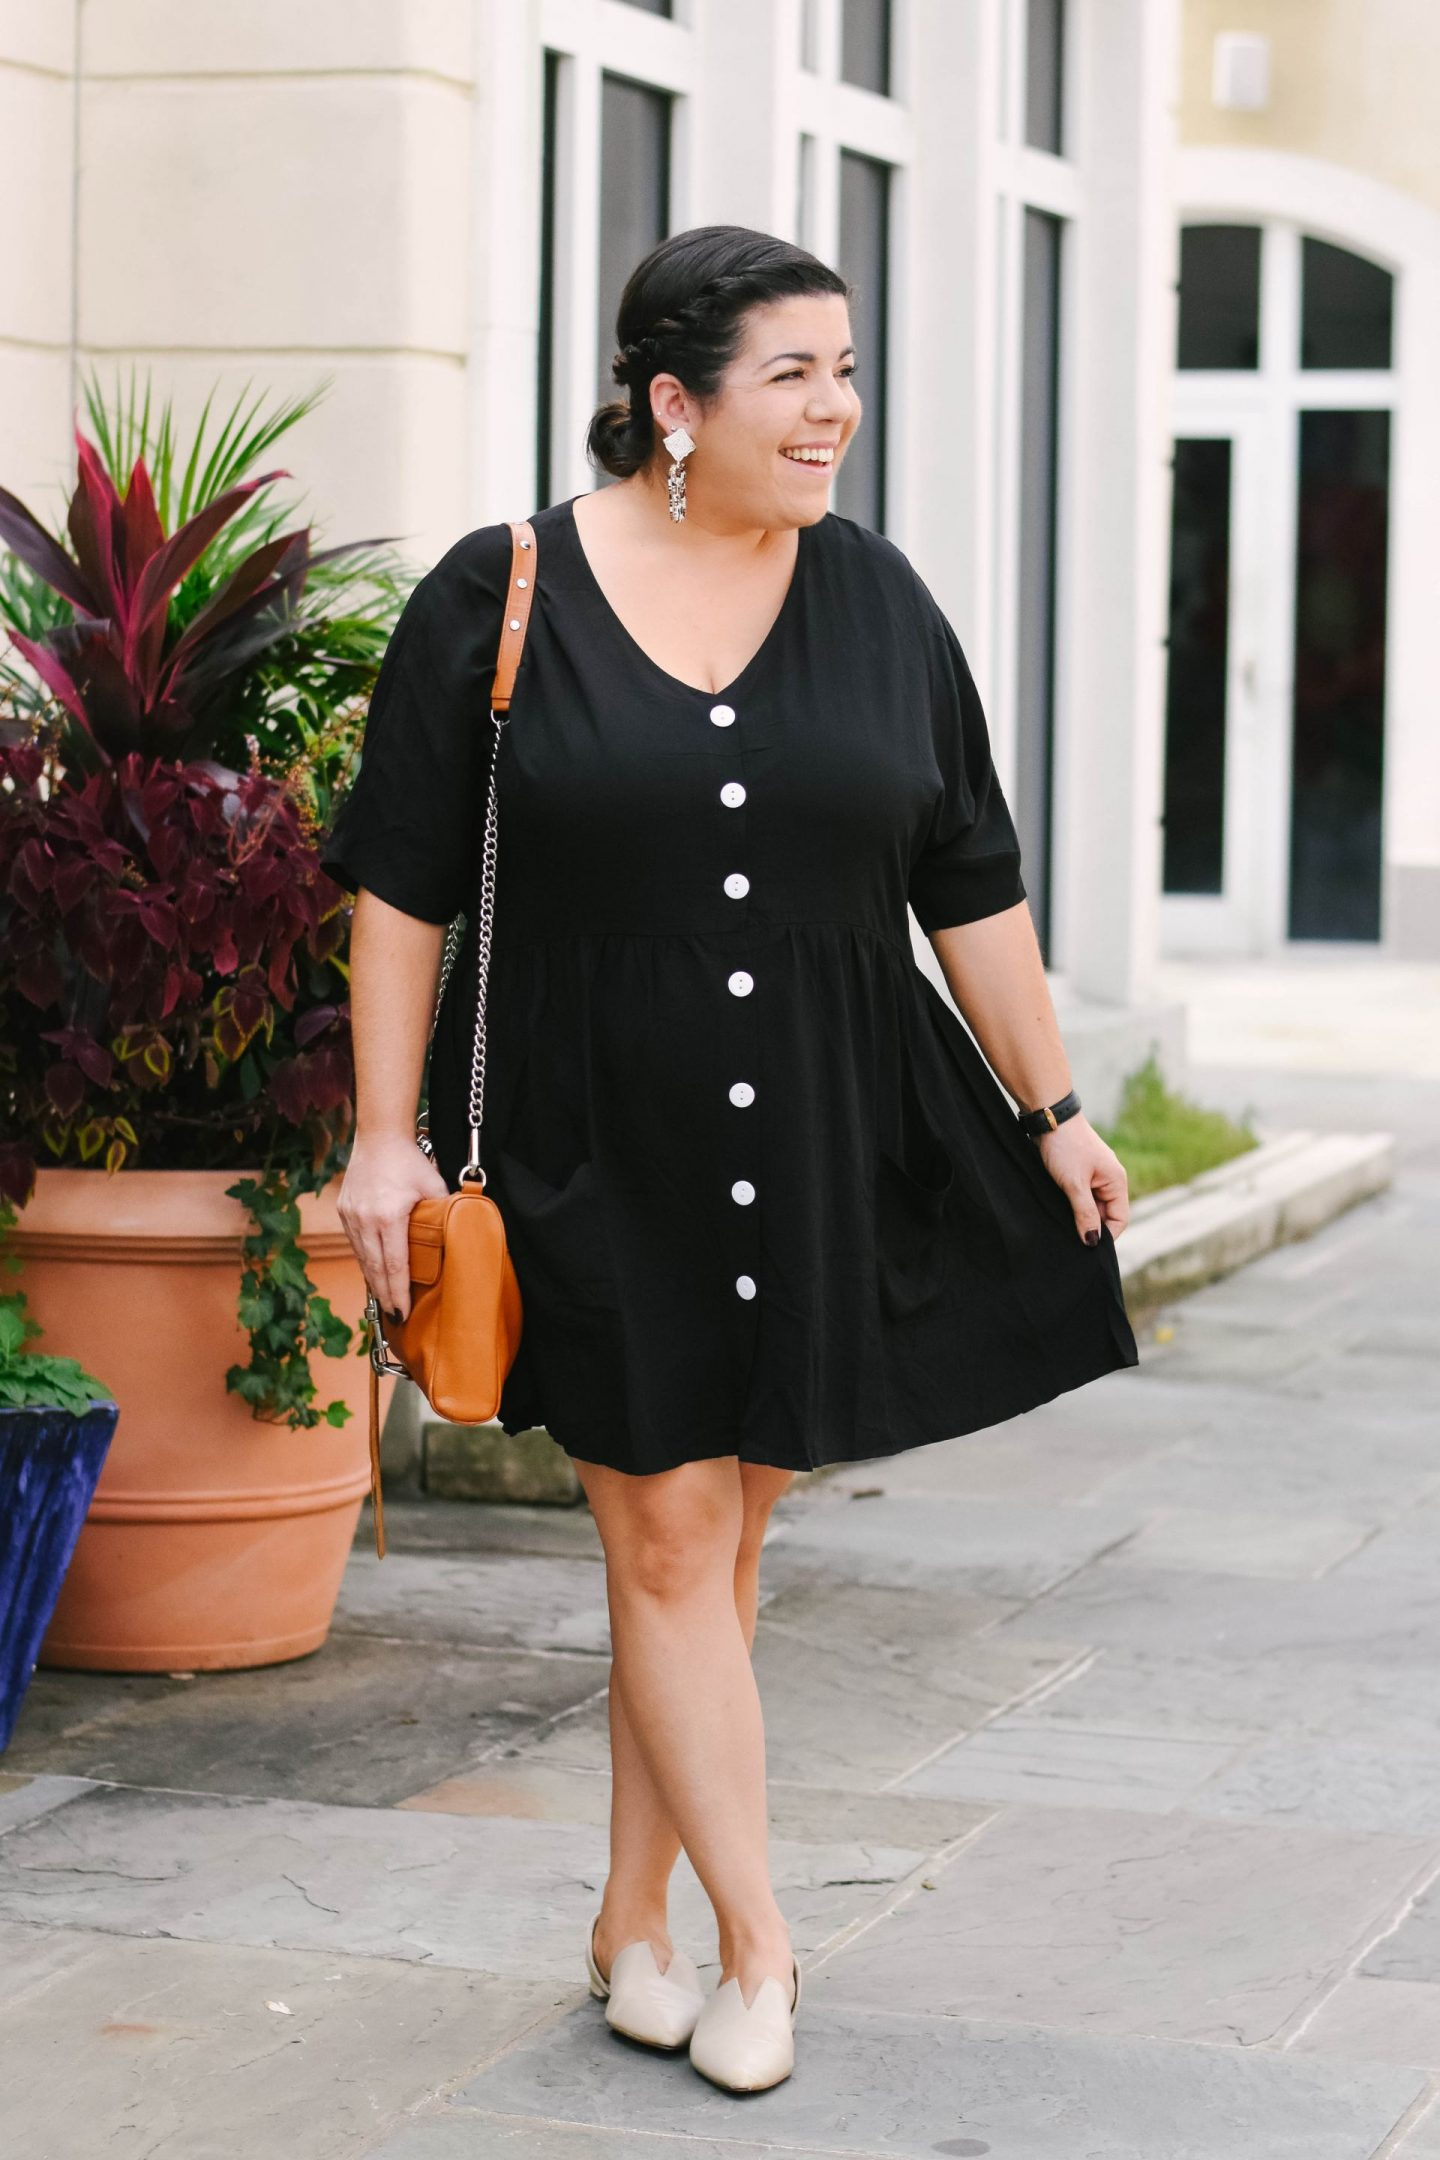 Casual LBD-@headtotoechic-Head to Toe Chic